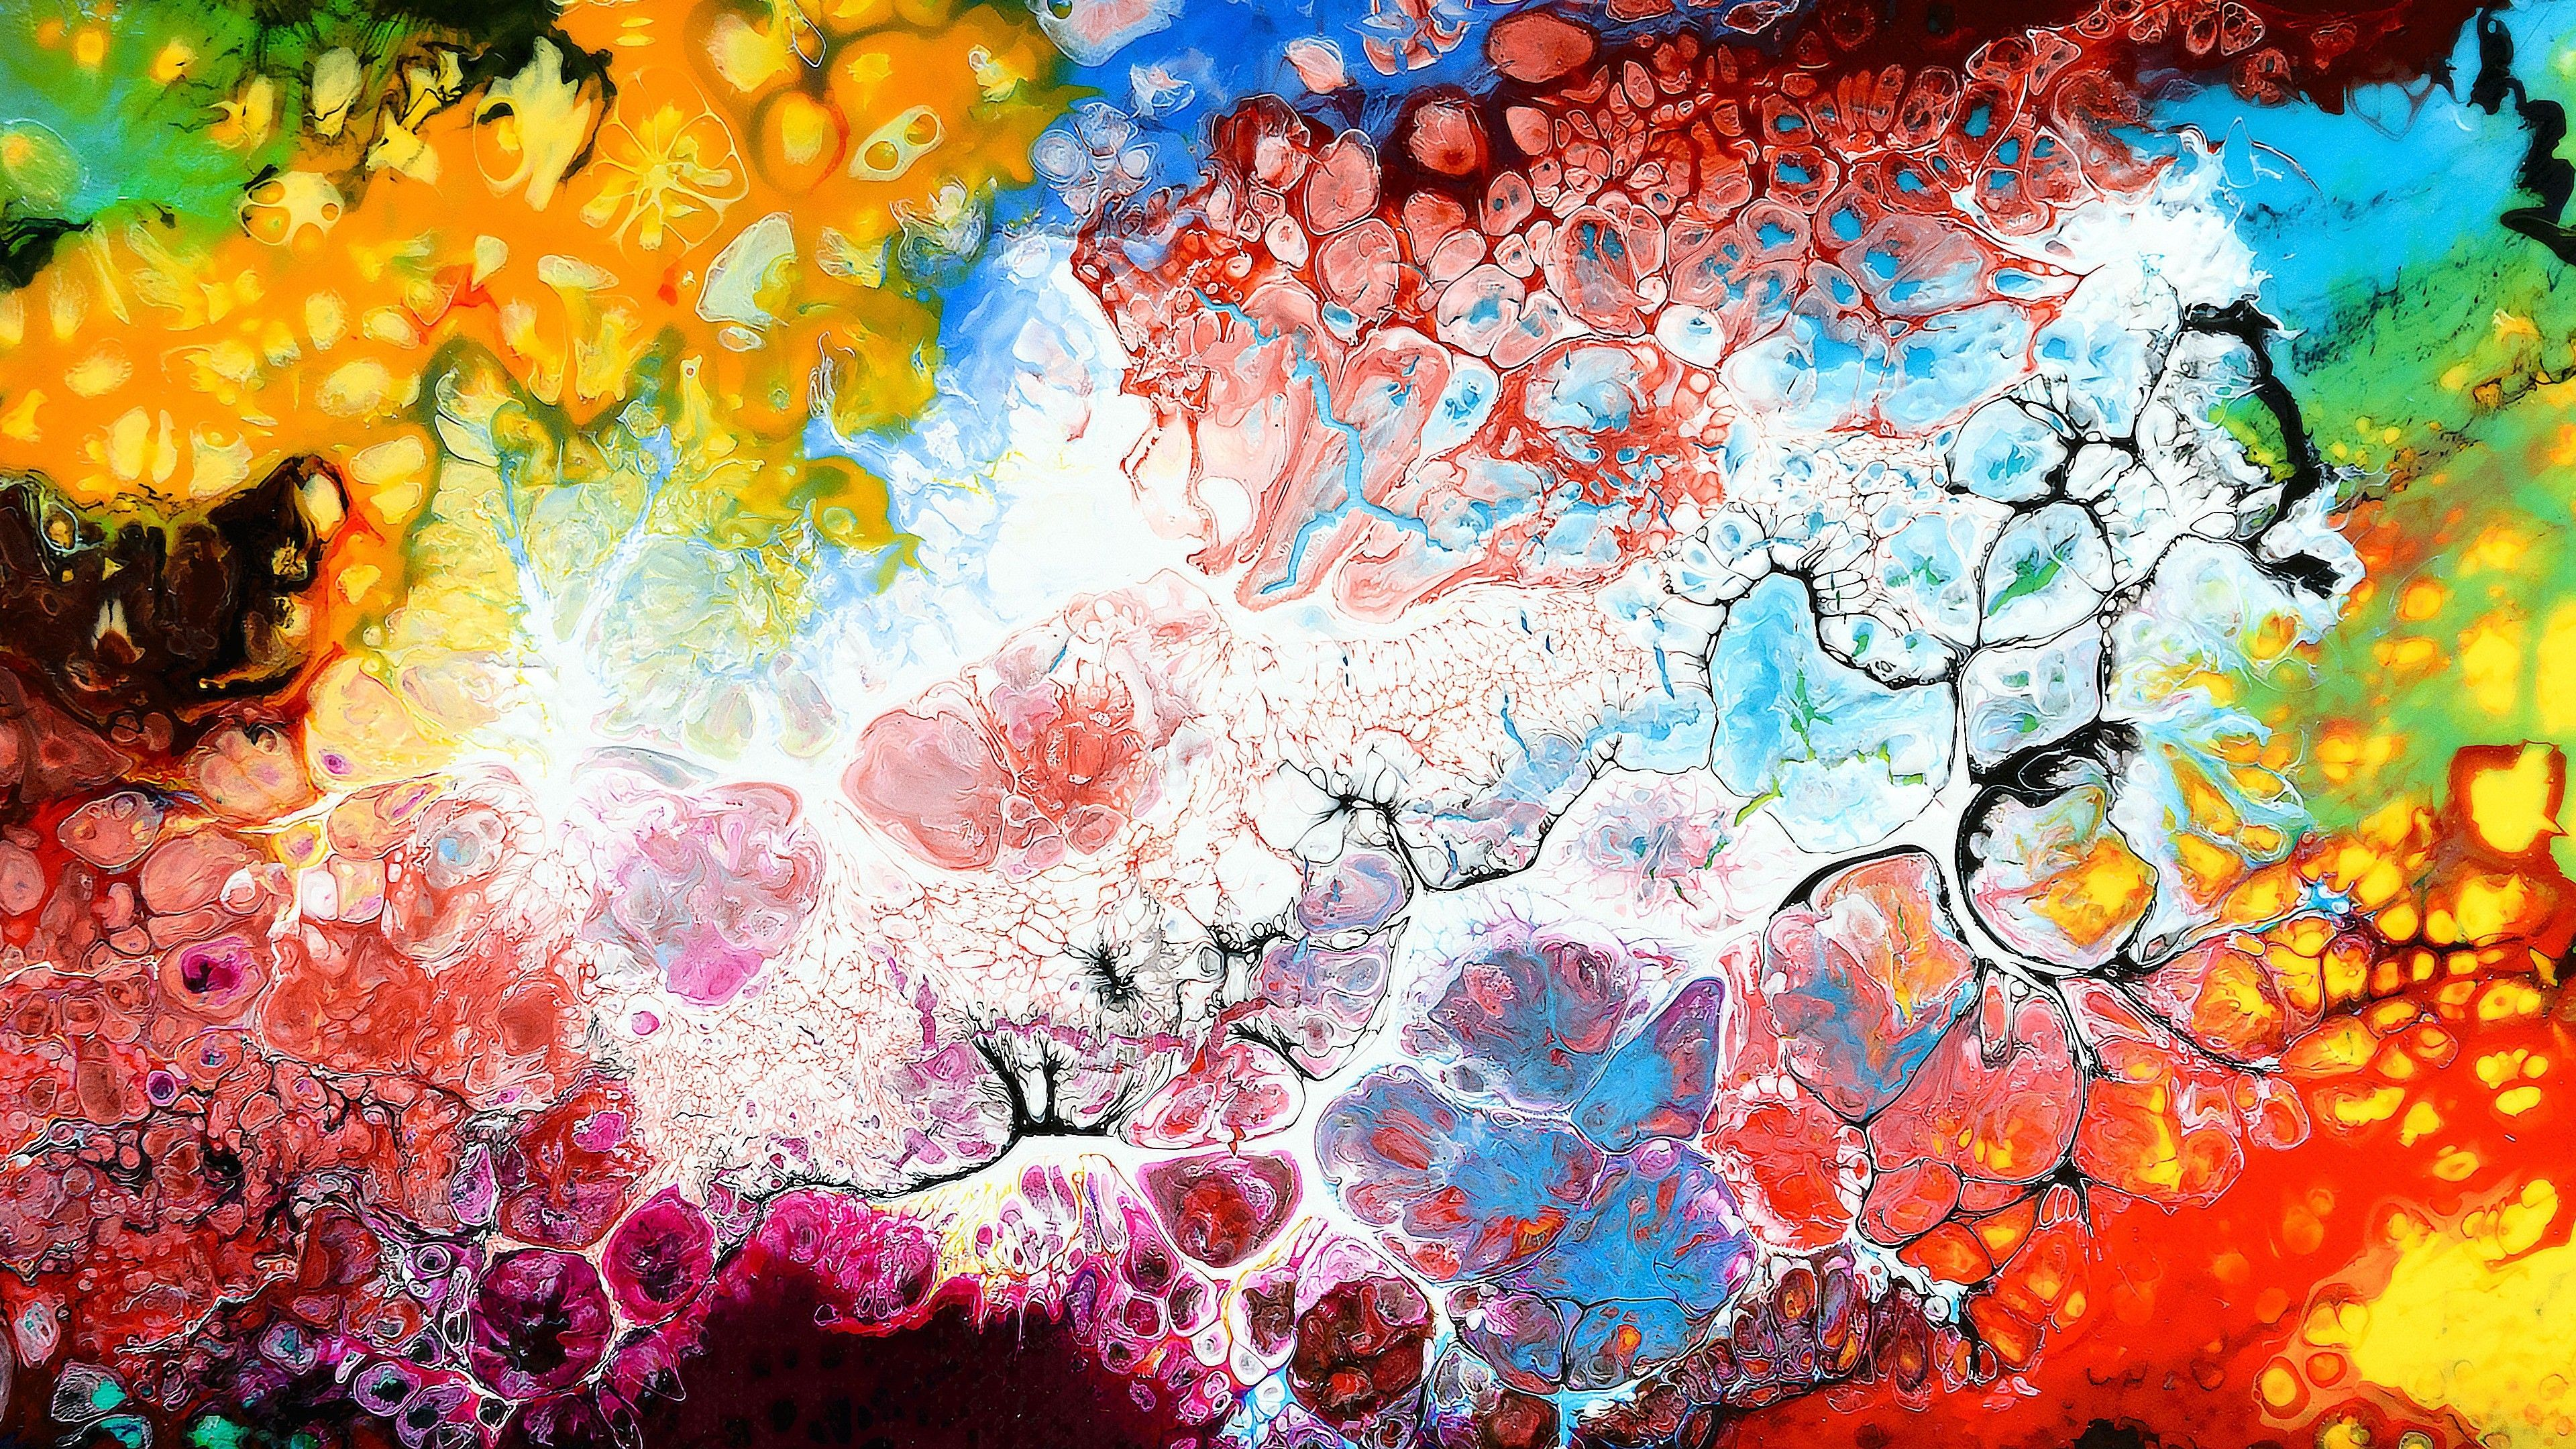 3840x2160 Colorful Texture Art Abstract 4K Wallpaper | HD Wallpapers